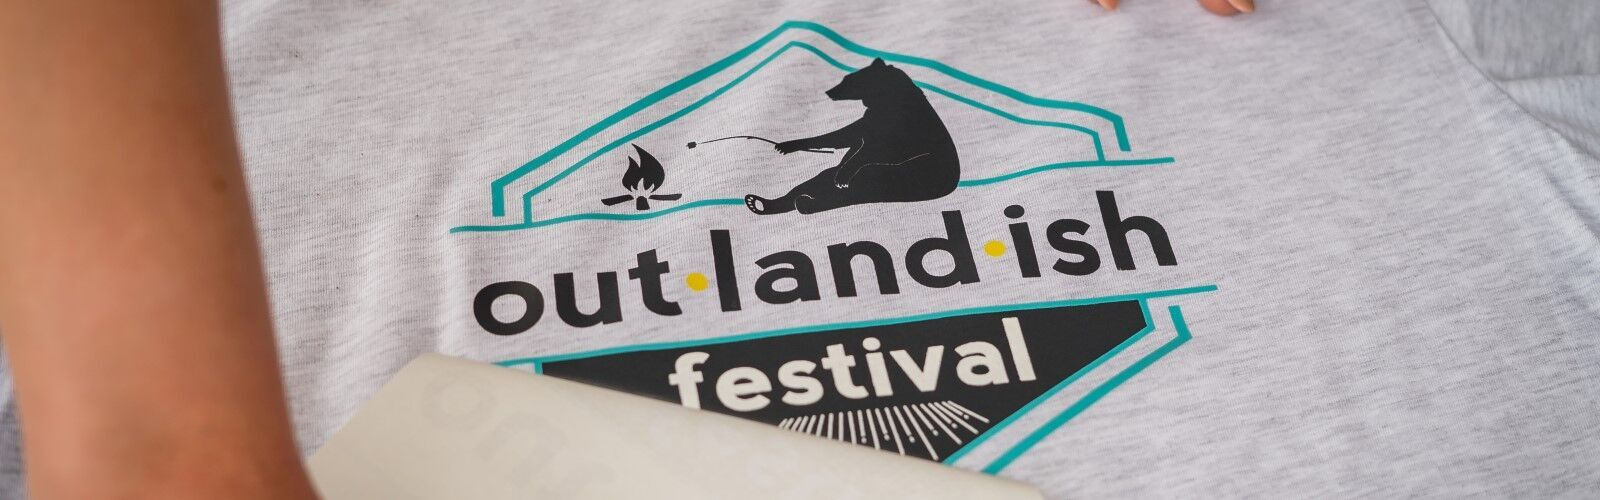 out·land·ish festival t-shirts being printed by Red Threads